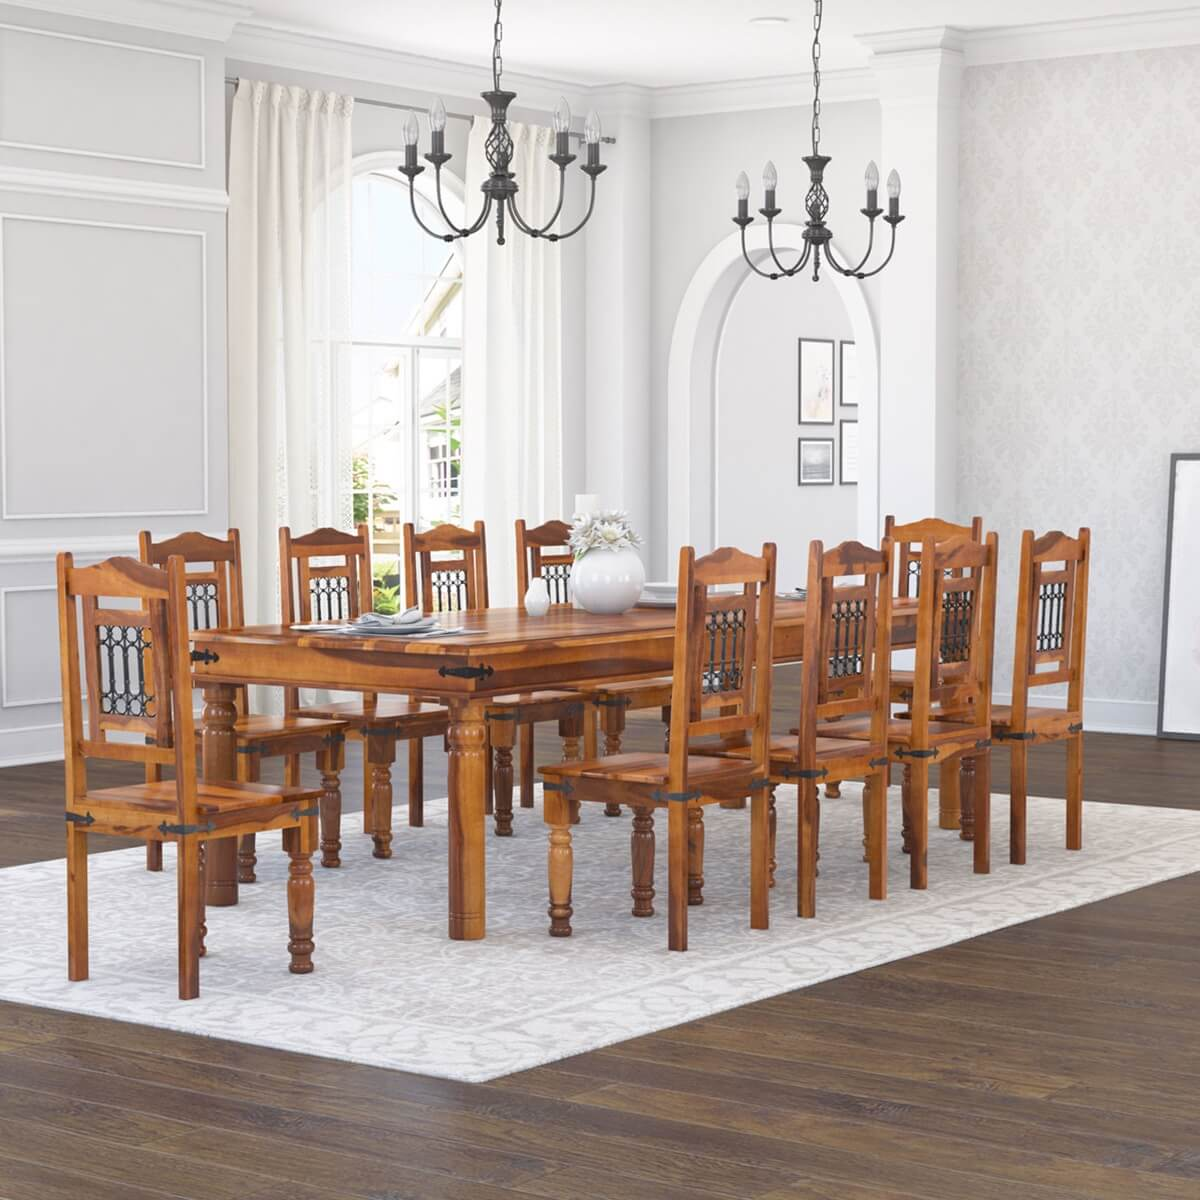 San francisco rustic furniture large dining table with 10 for Dining table set